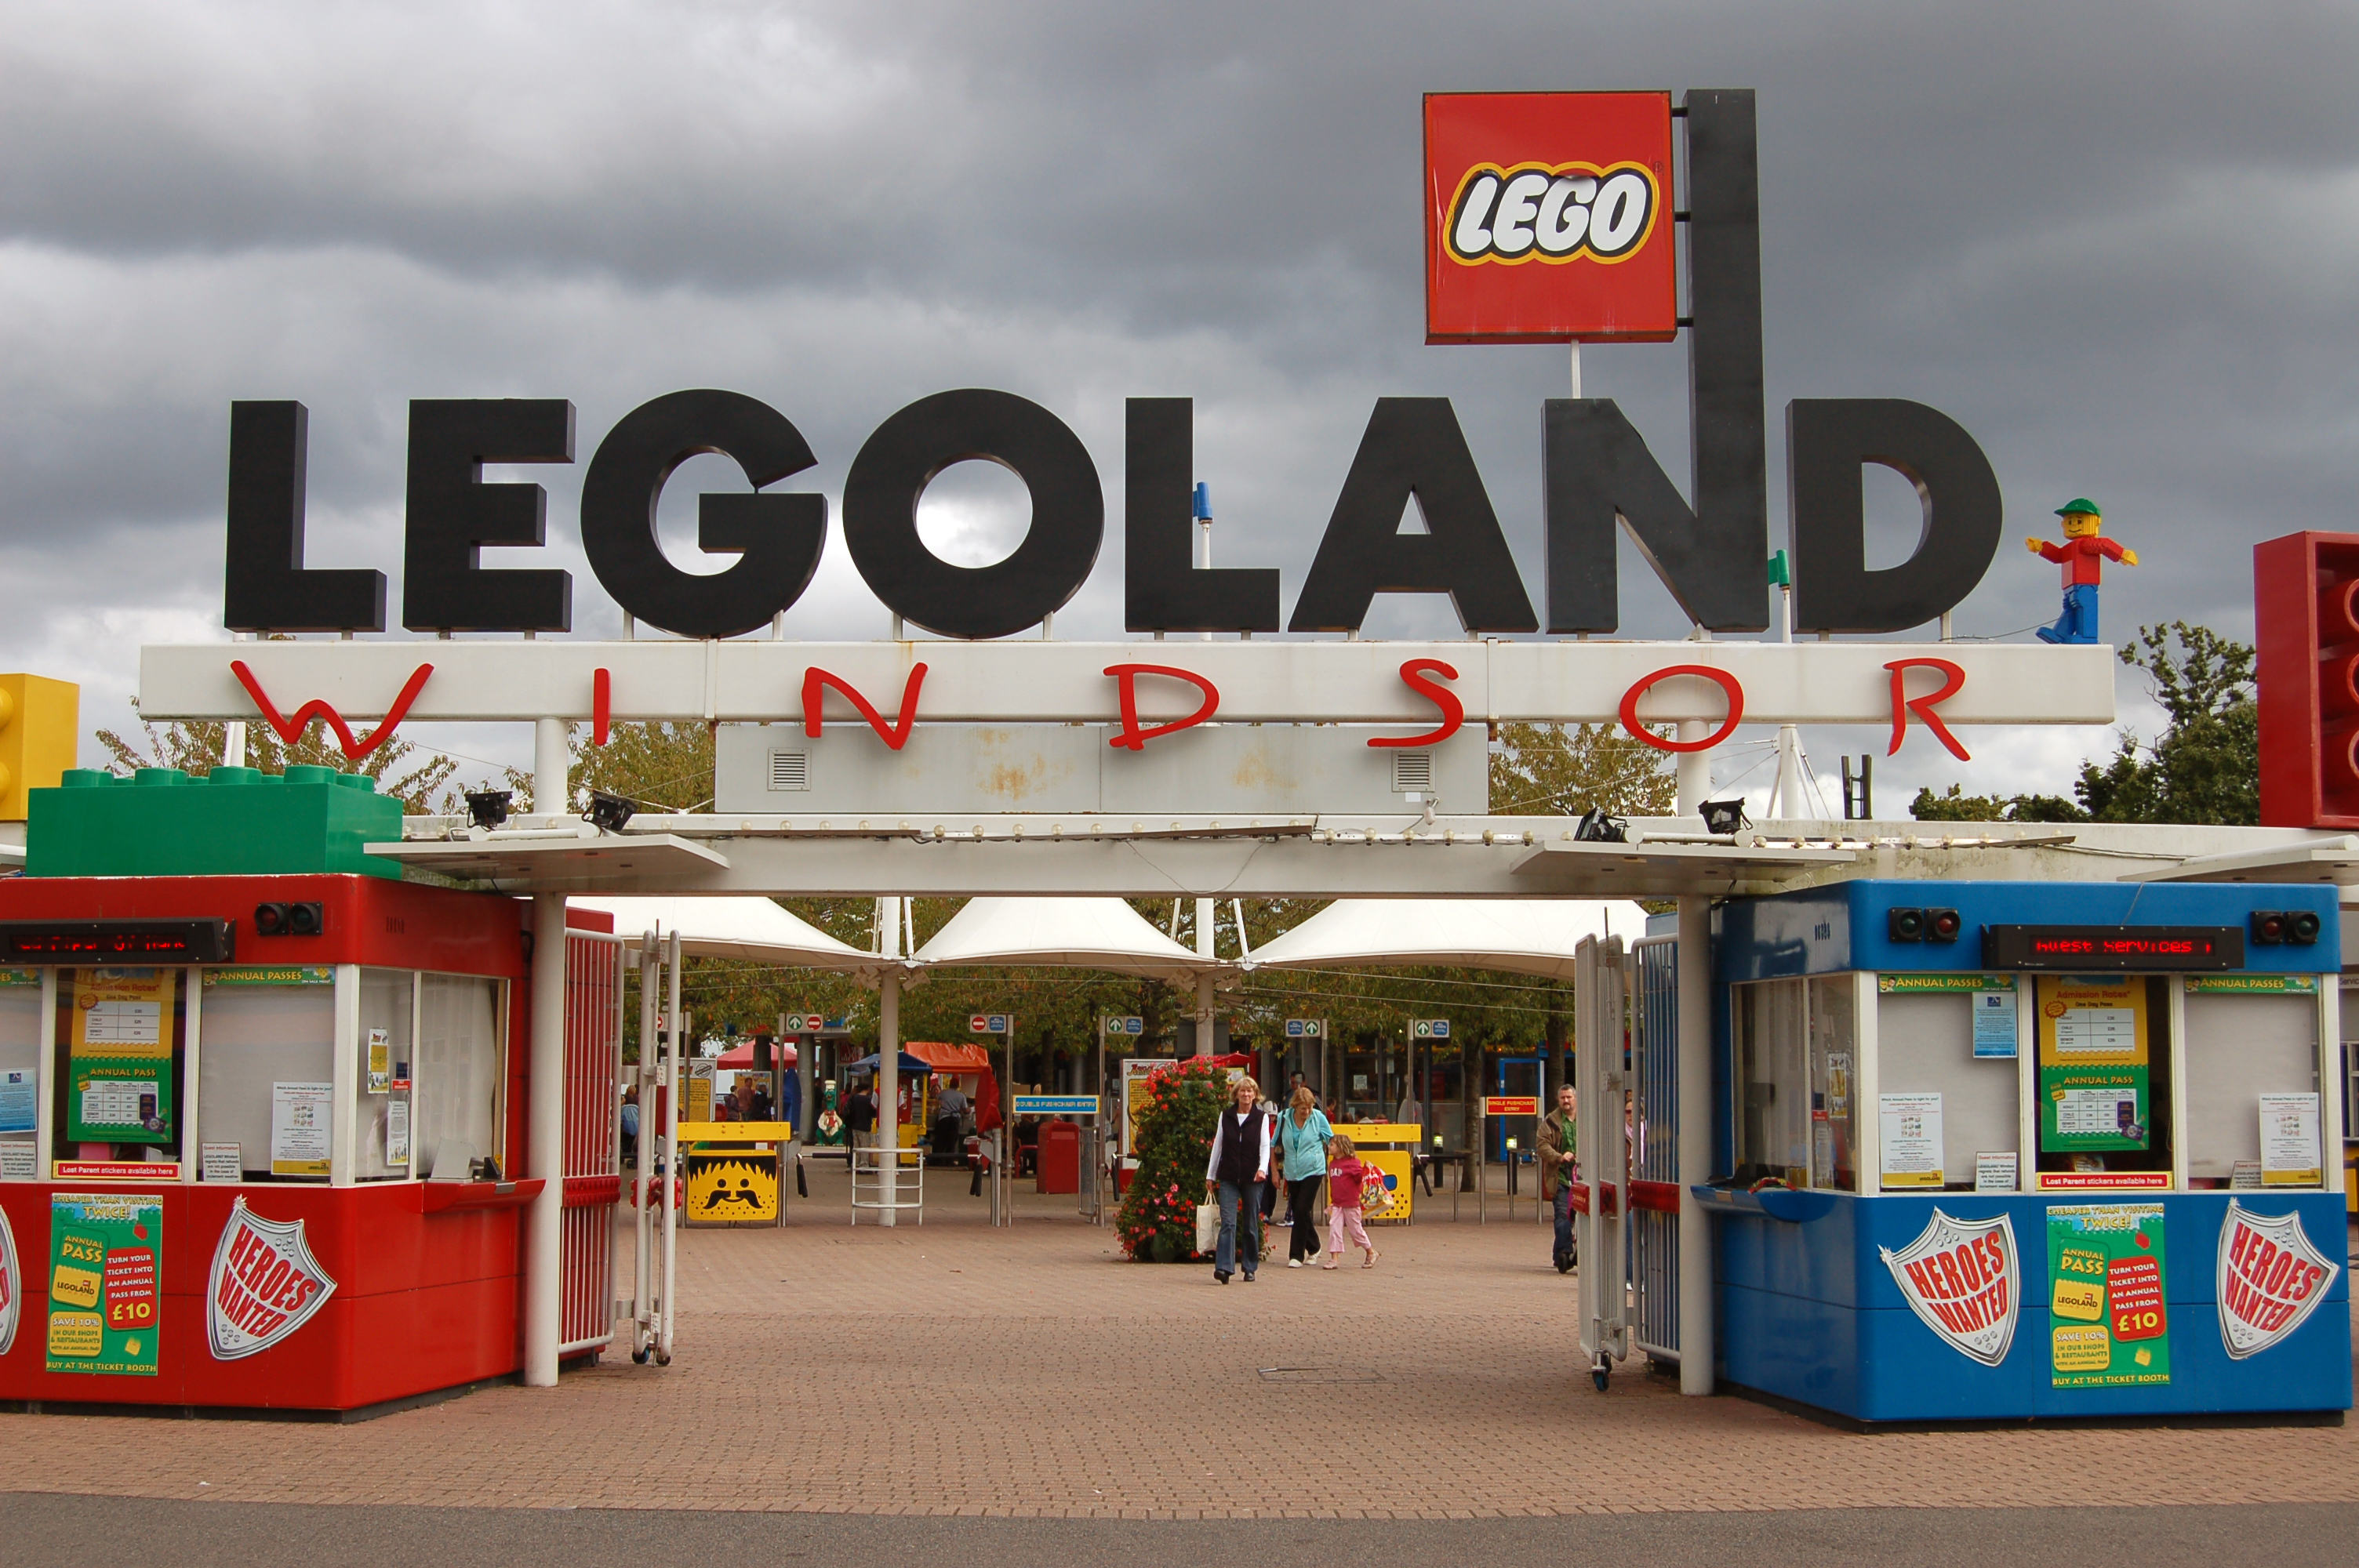 A Newborn Baby Has Been Given A Lifetime Pass To Legoland, After Being Born There UNILAD 241